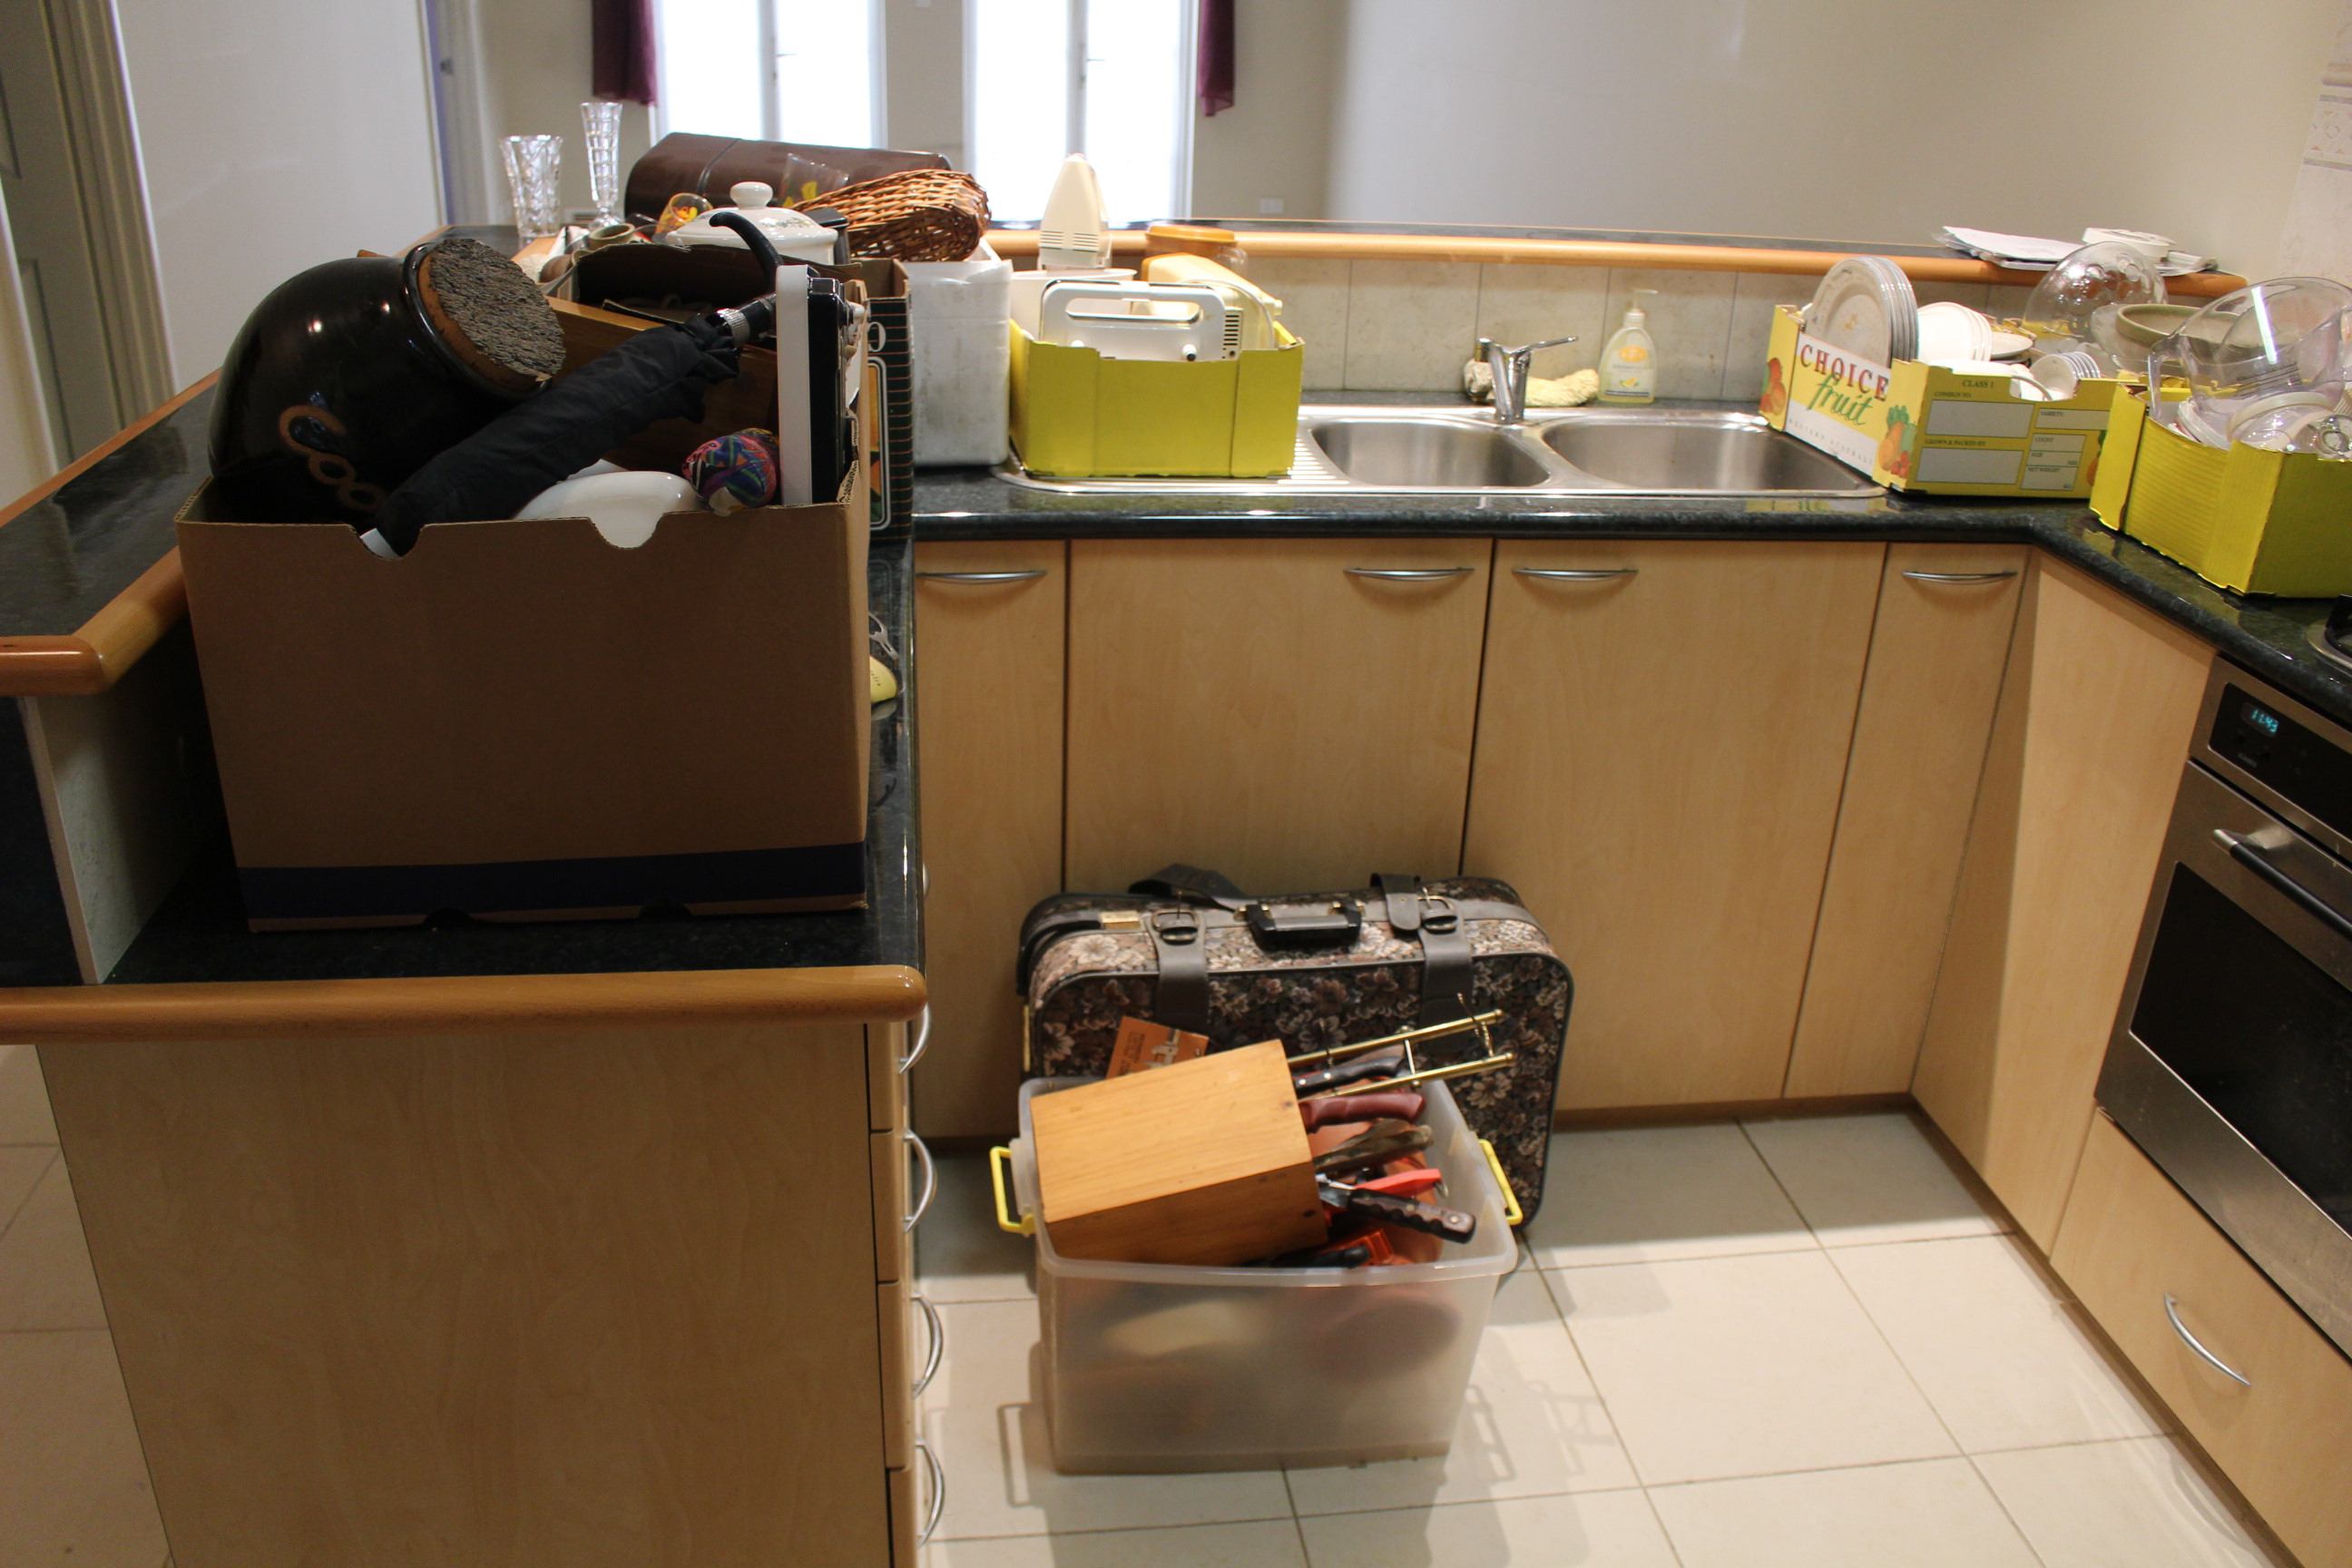 MOVING OVERSEAS HOUSE CLEARANCE